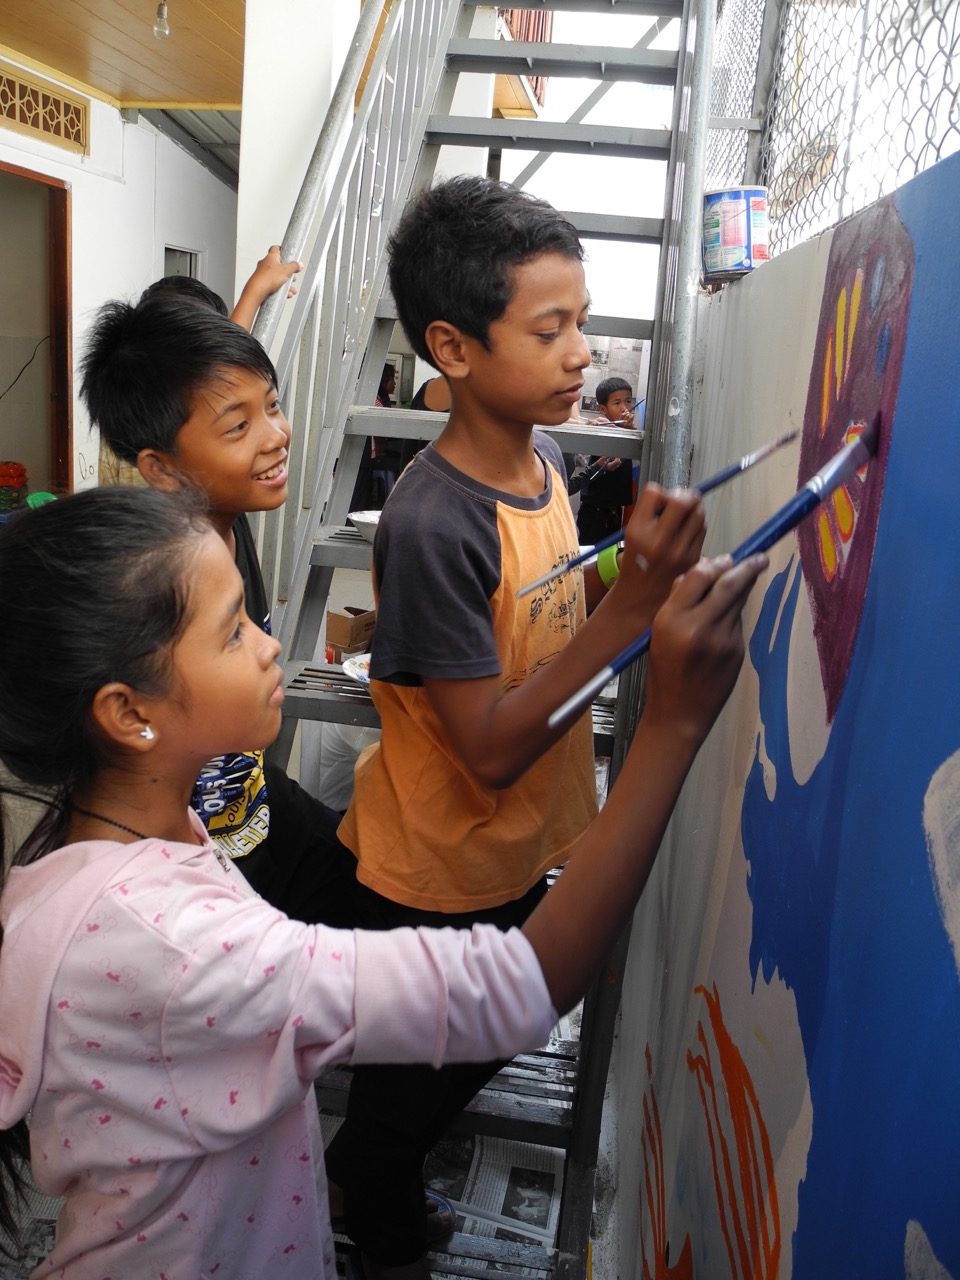 In a project organized by Elder Gerrit W. Gong and his family, children in Phnom Pehn, Cambodia, paint a mural on the wall of a soup kitchen.